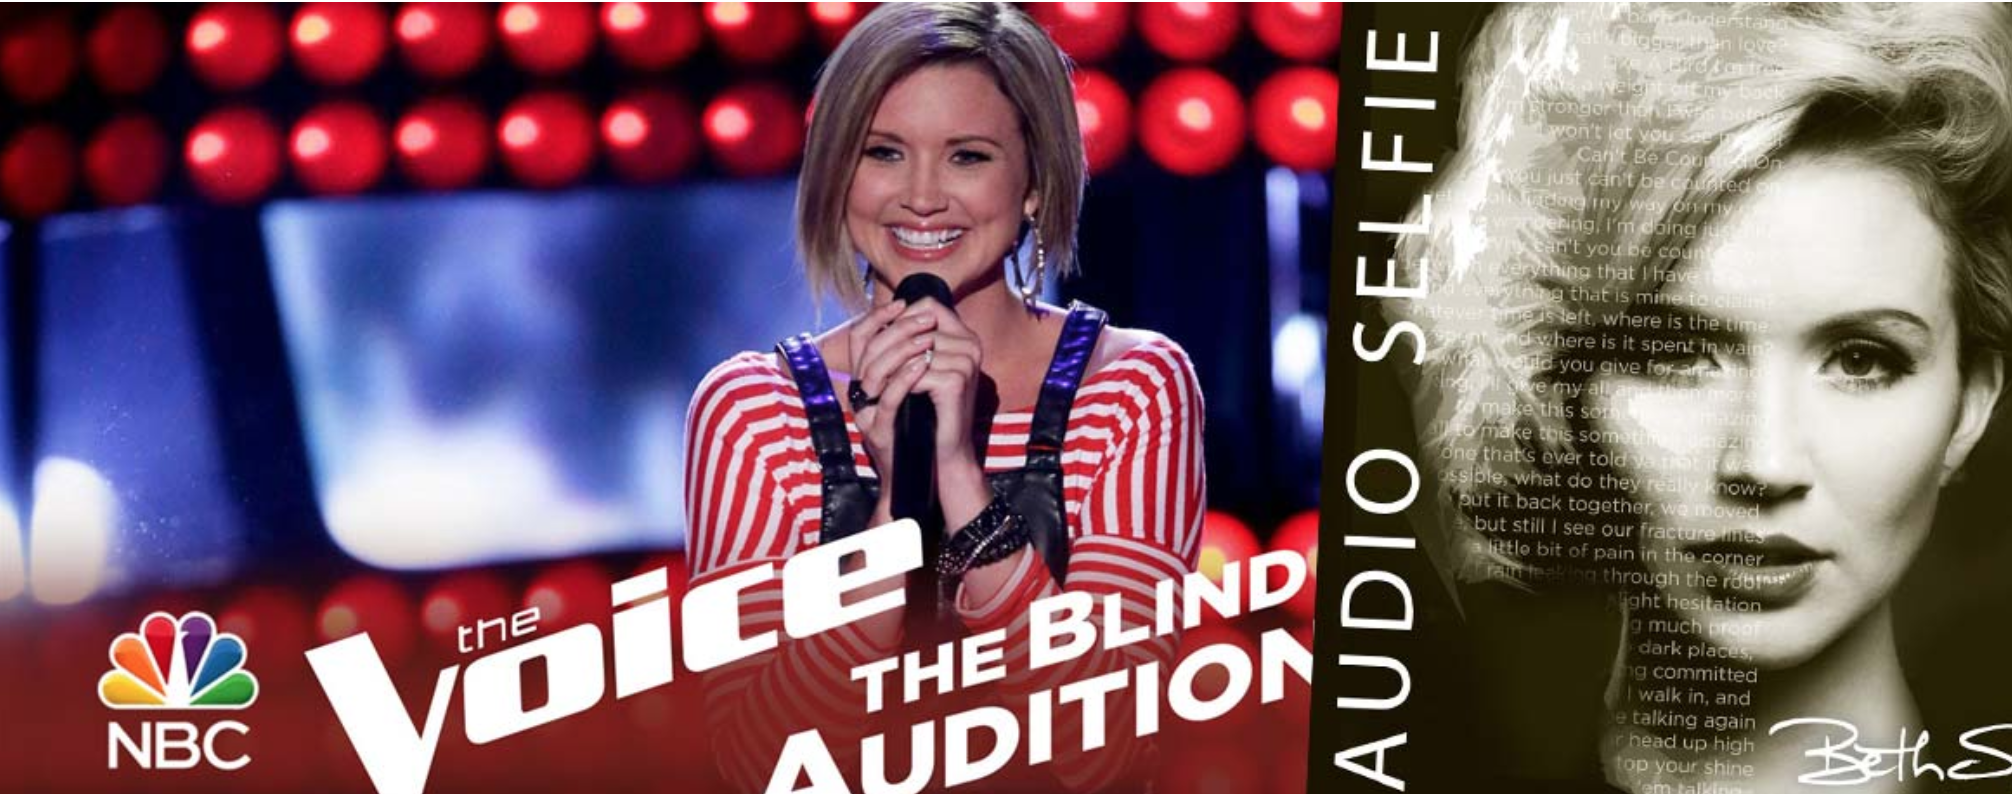 From her 4-chair turn-around performance on The Voice, Beth has steadily built a career as a rising powerhouse performer.